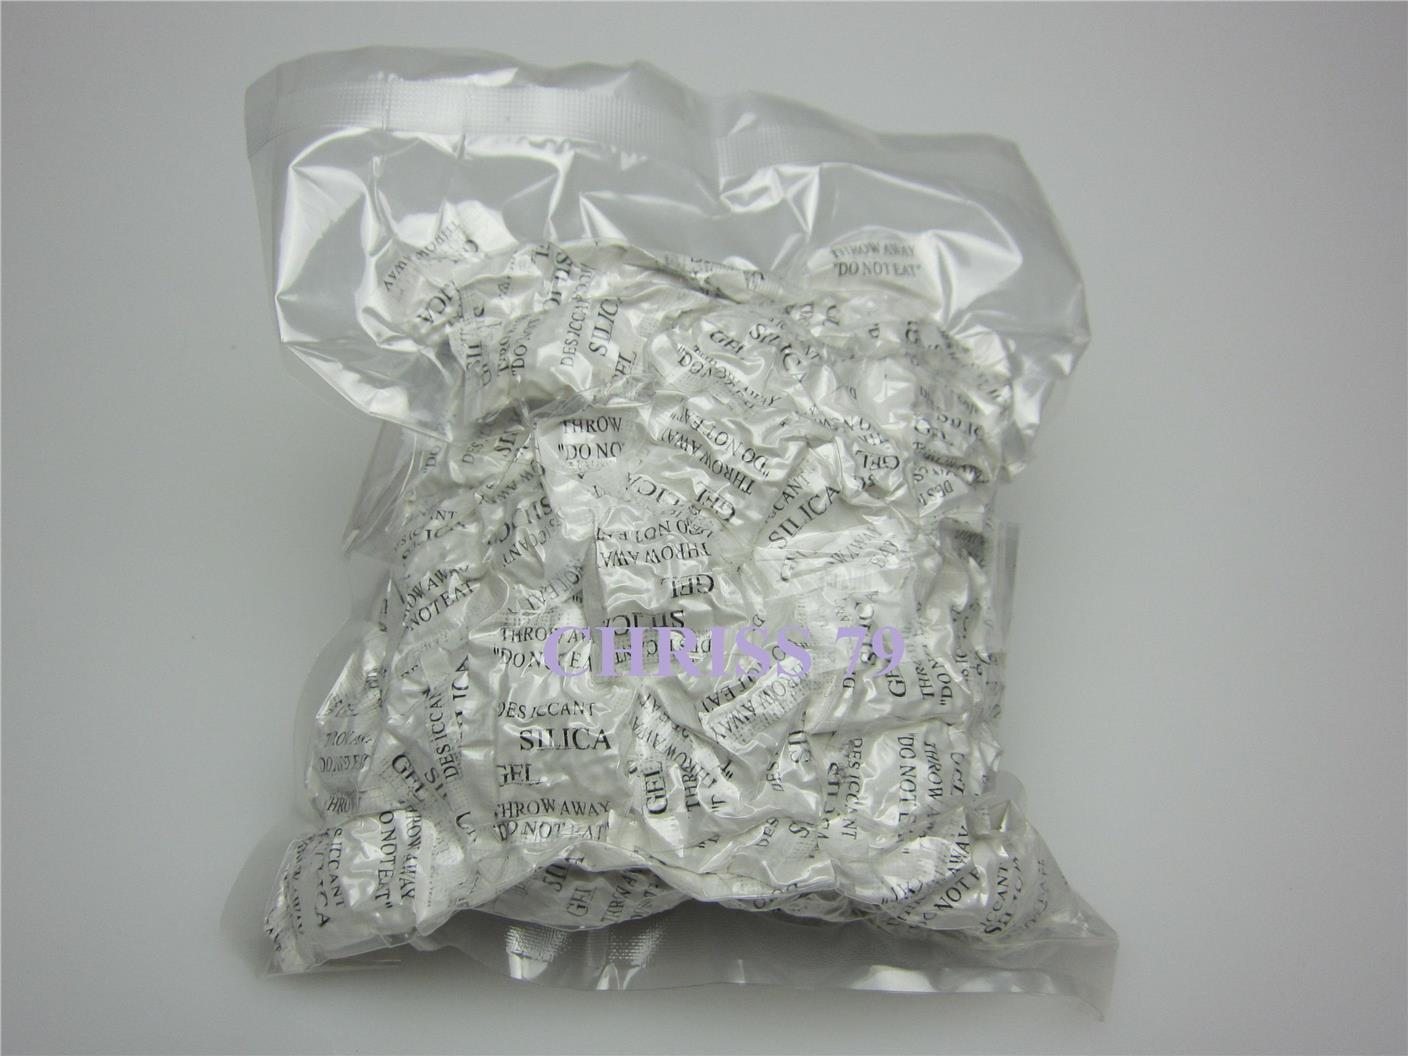 100 Pcs X 1GM SILICA GEL PACKED IN VACUUM PACK